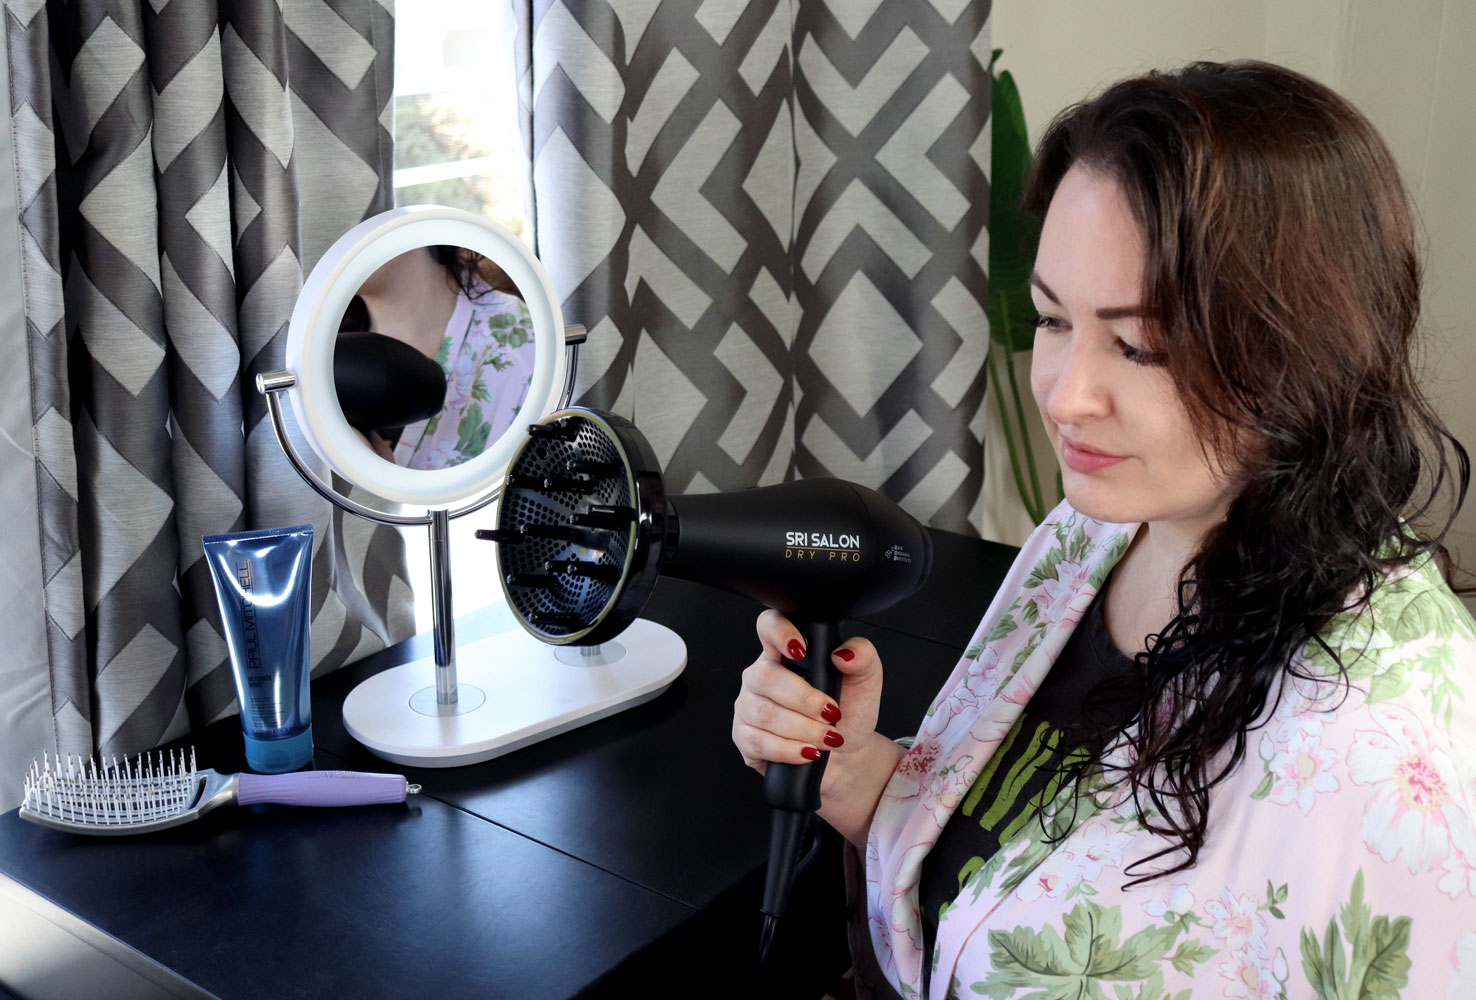 SRI Salon Dry Pro Hair Dryer with Diffuser Attachment